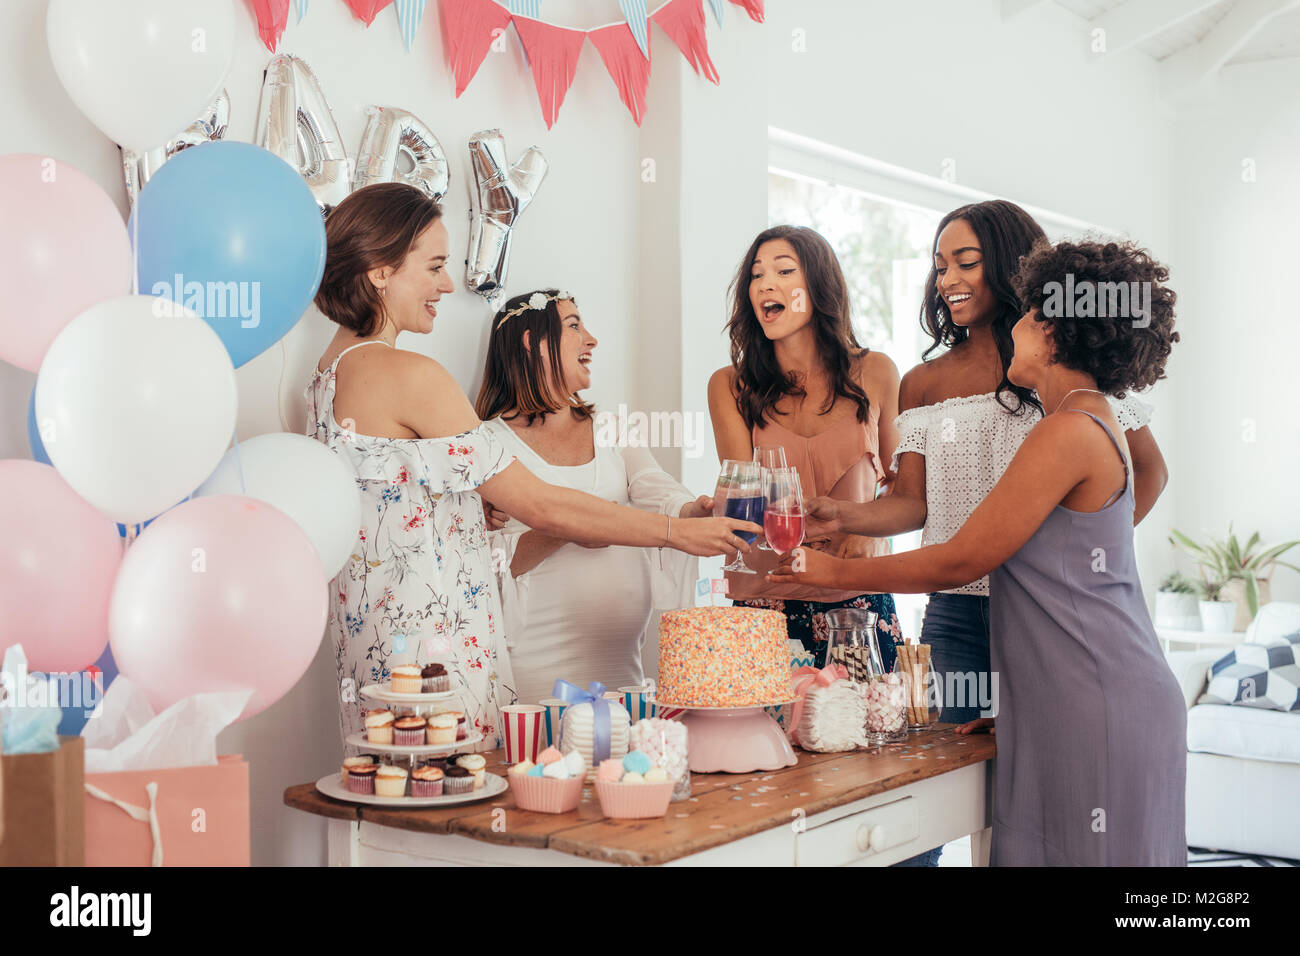 Women Toasting With Juices At Baby Shower Party Group Of Friends At Stock Photo Alamy